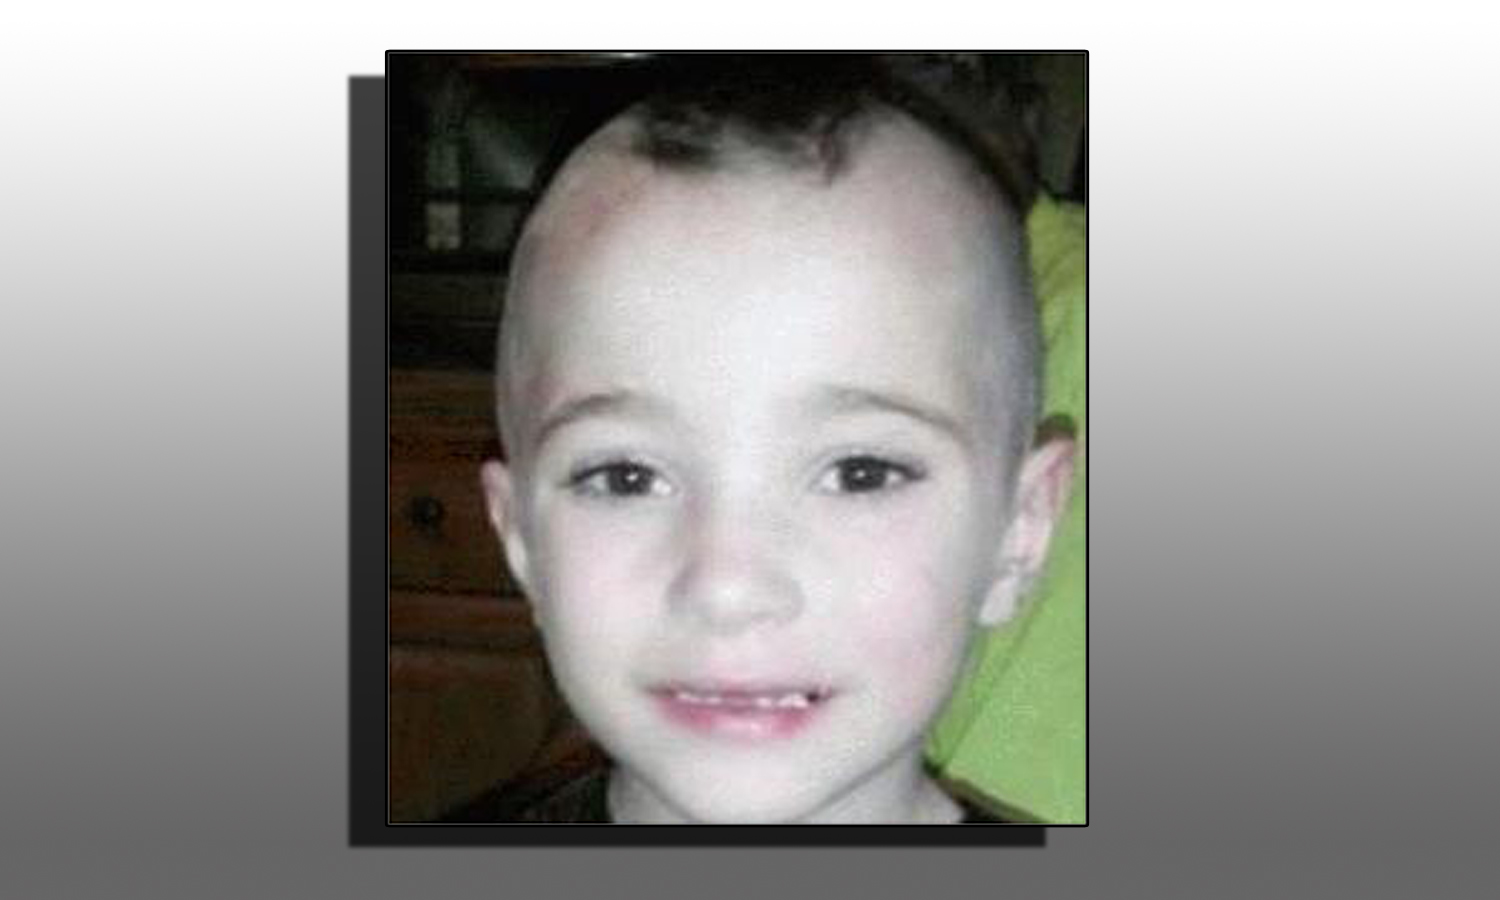 Vile Kidnapping and Murder of Albany Child Shocks the Region